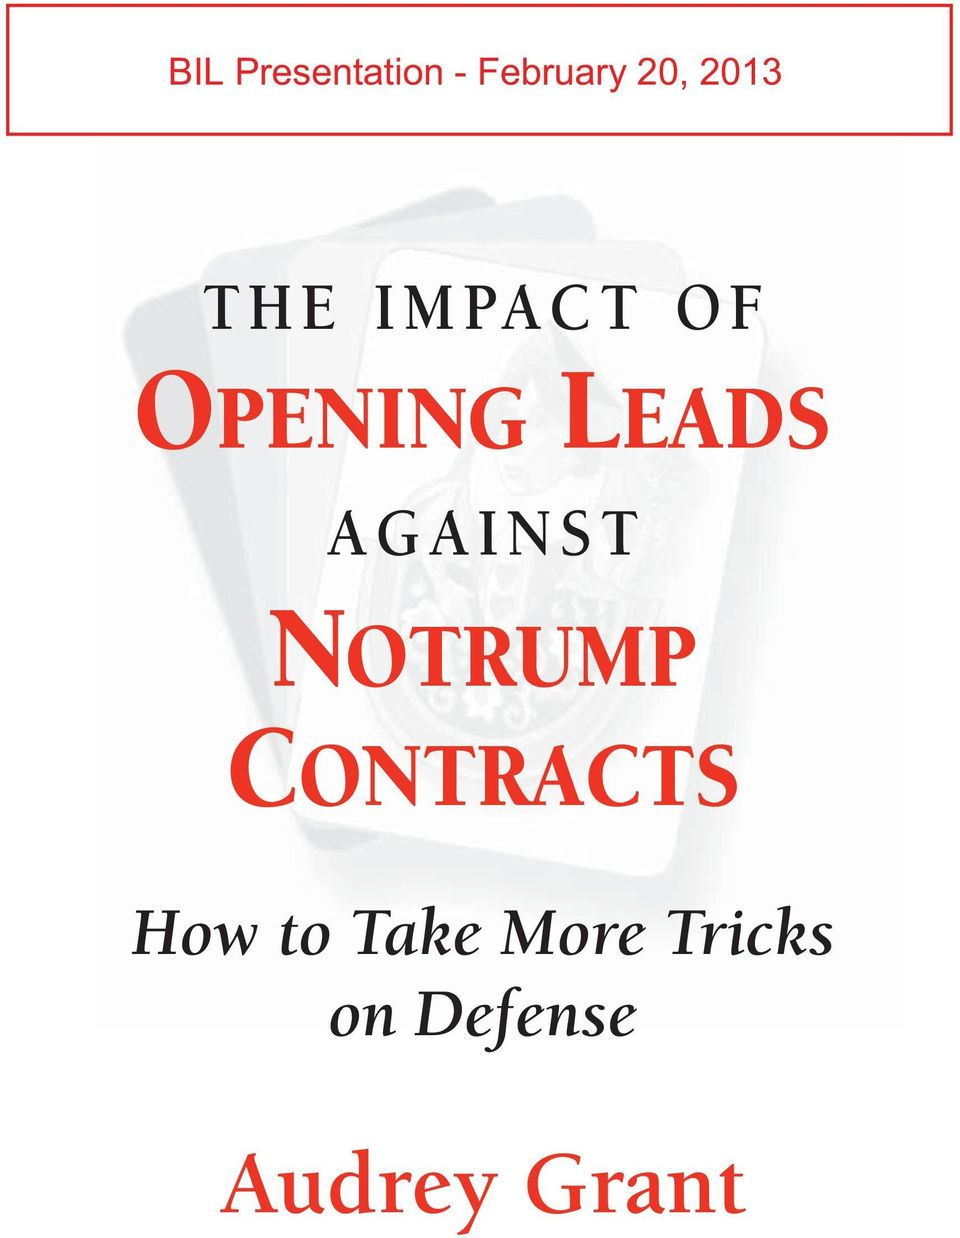 IMPACT OF OPENING LEADS AGAINST NOTRUMP